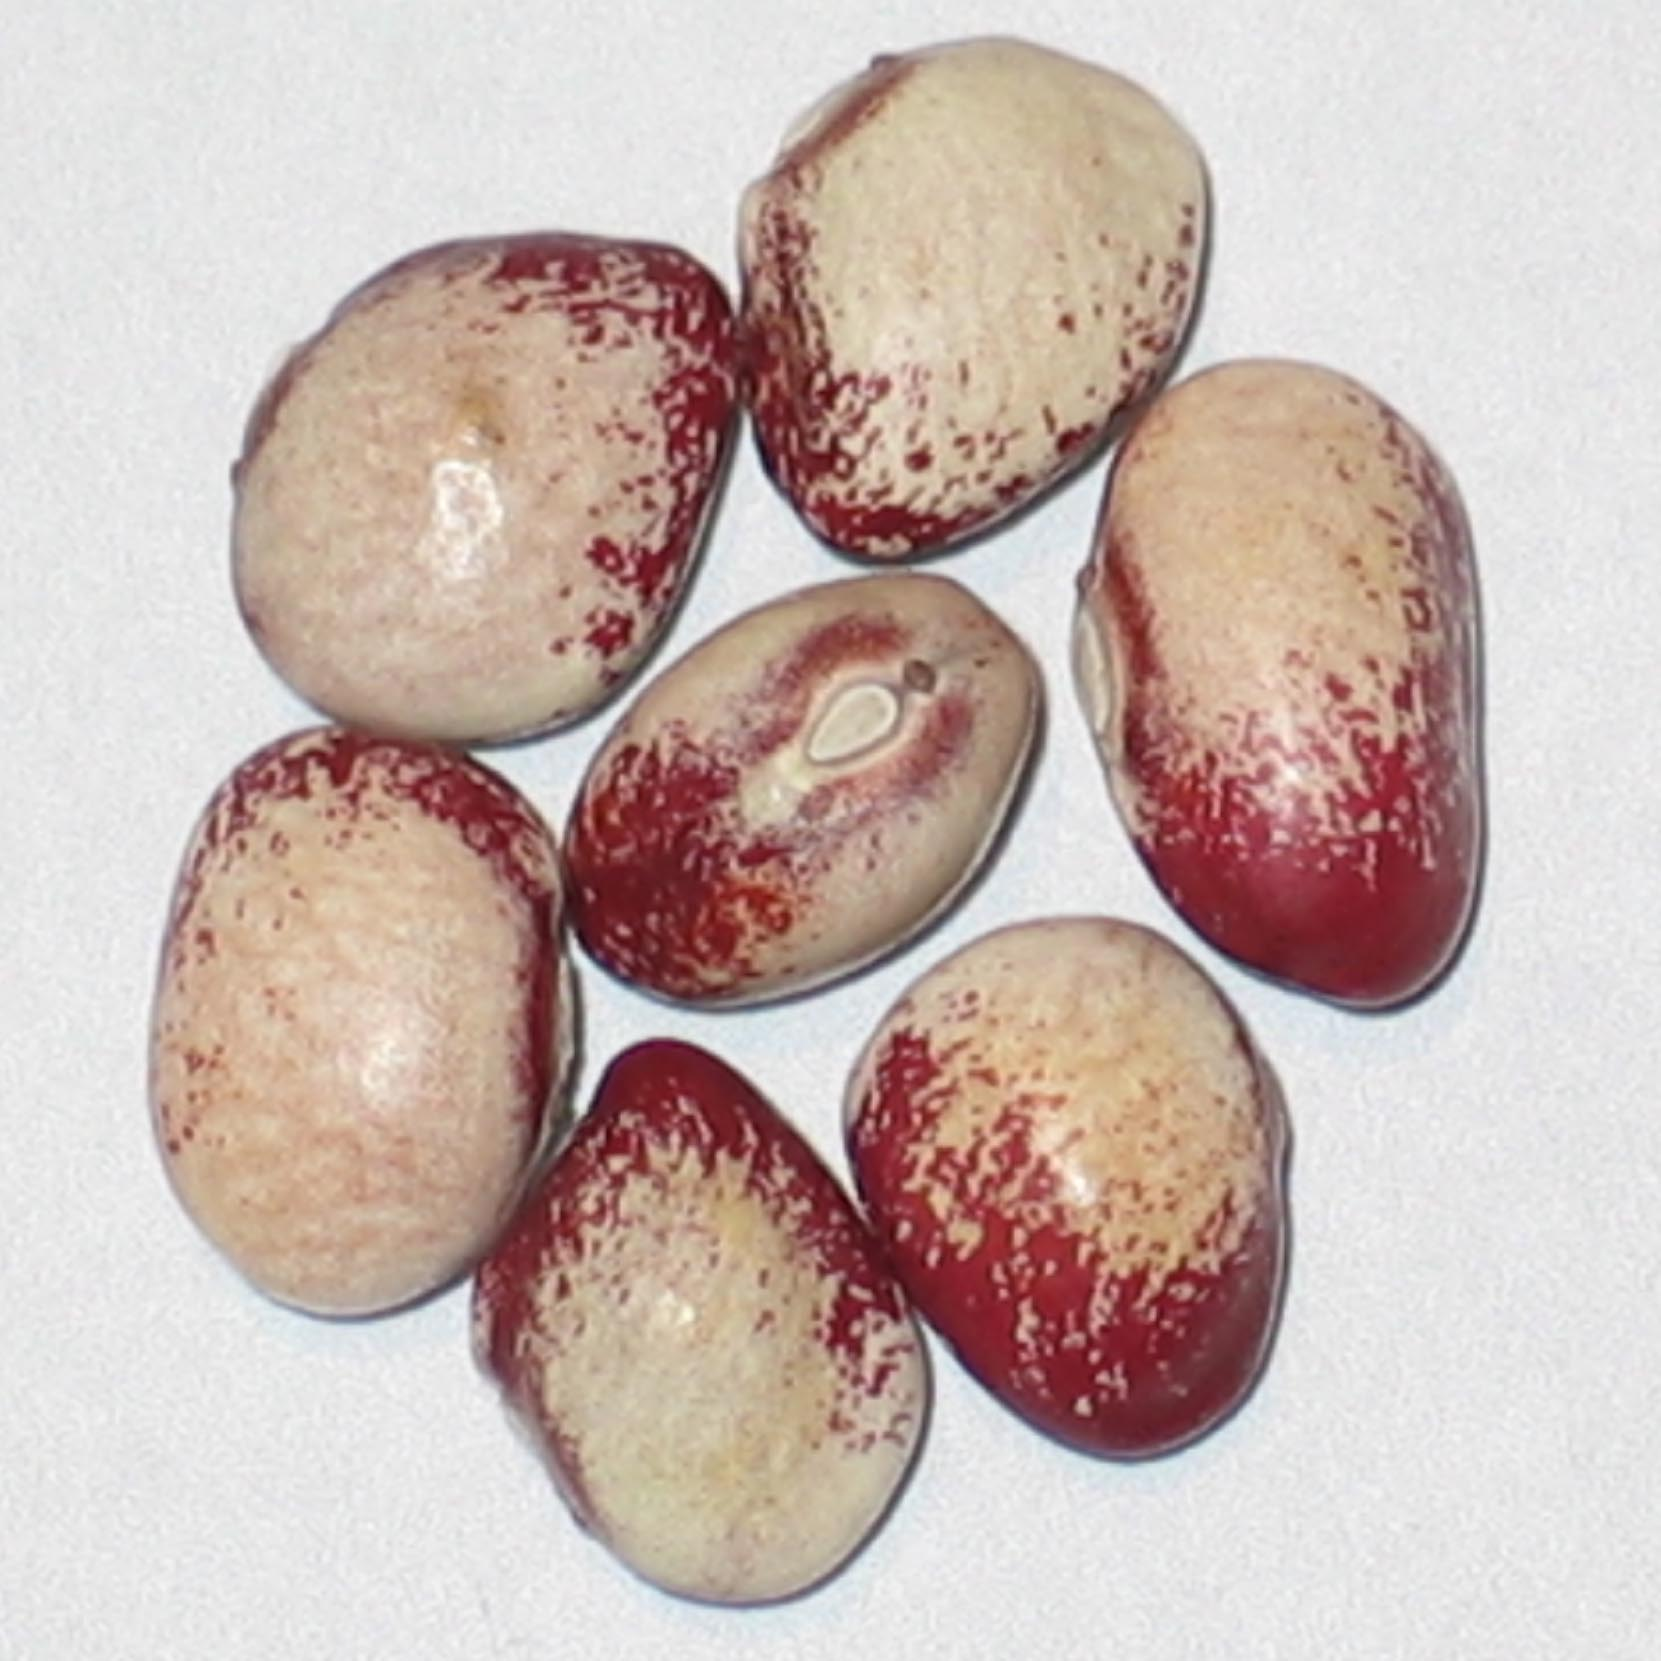 image of Mayflower beans